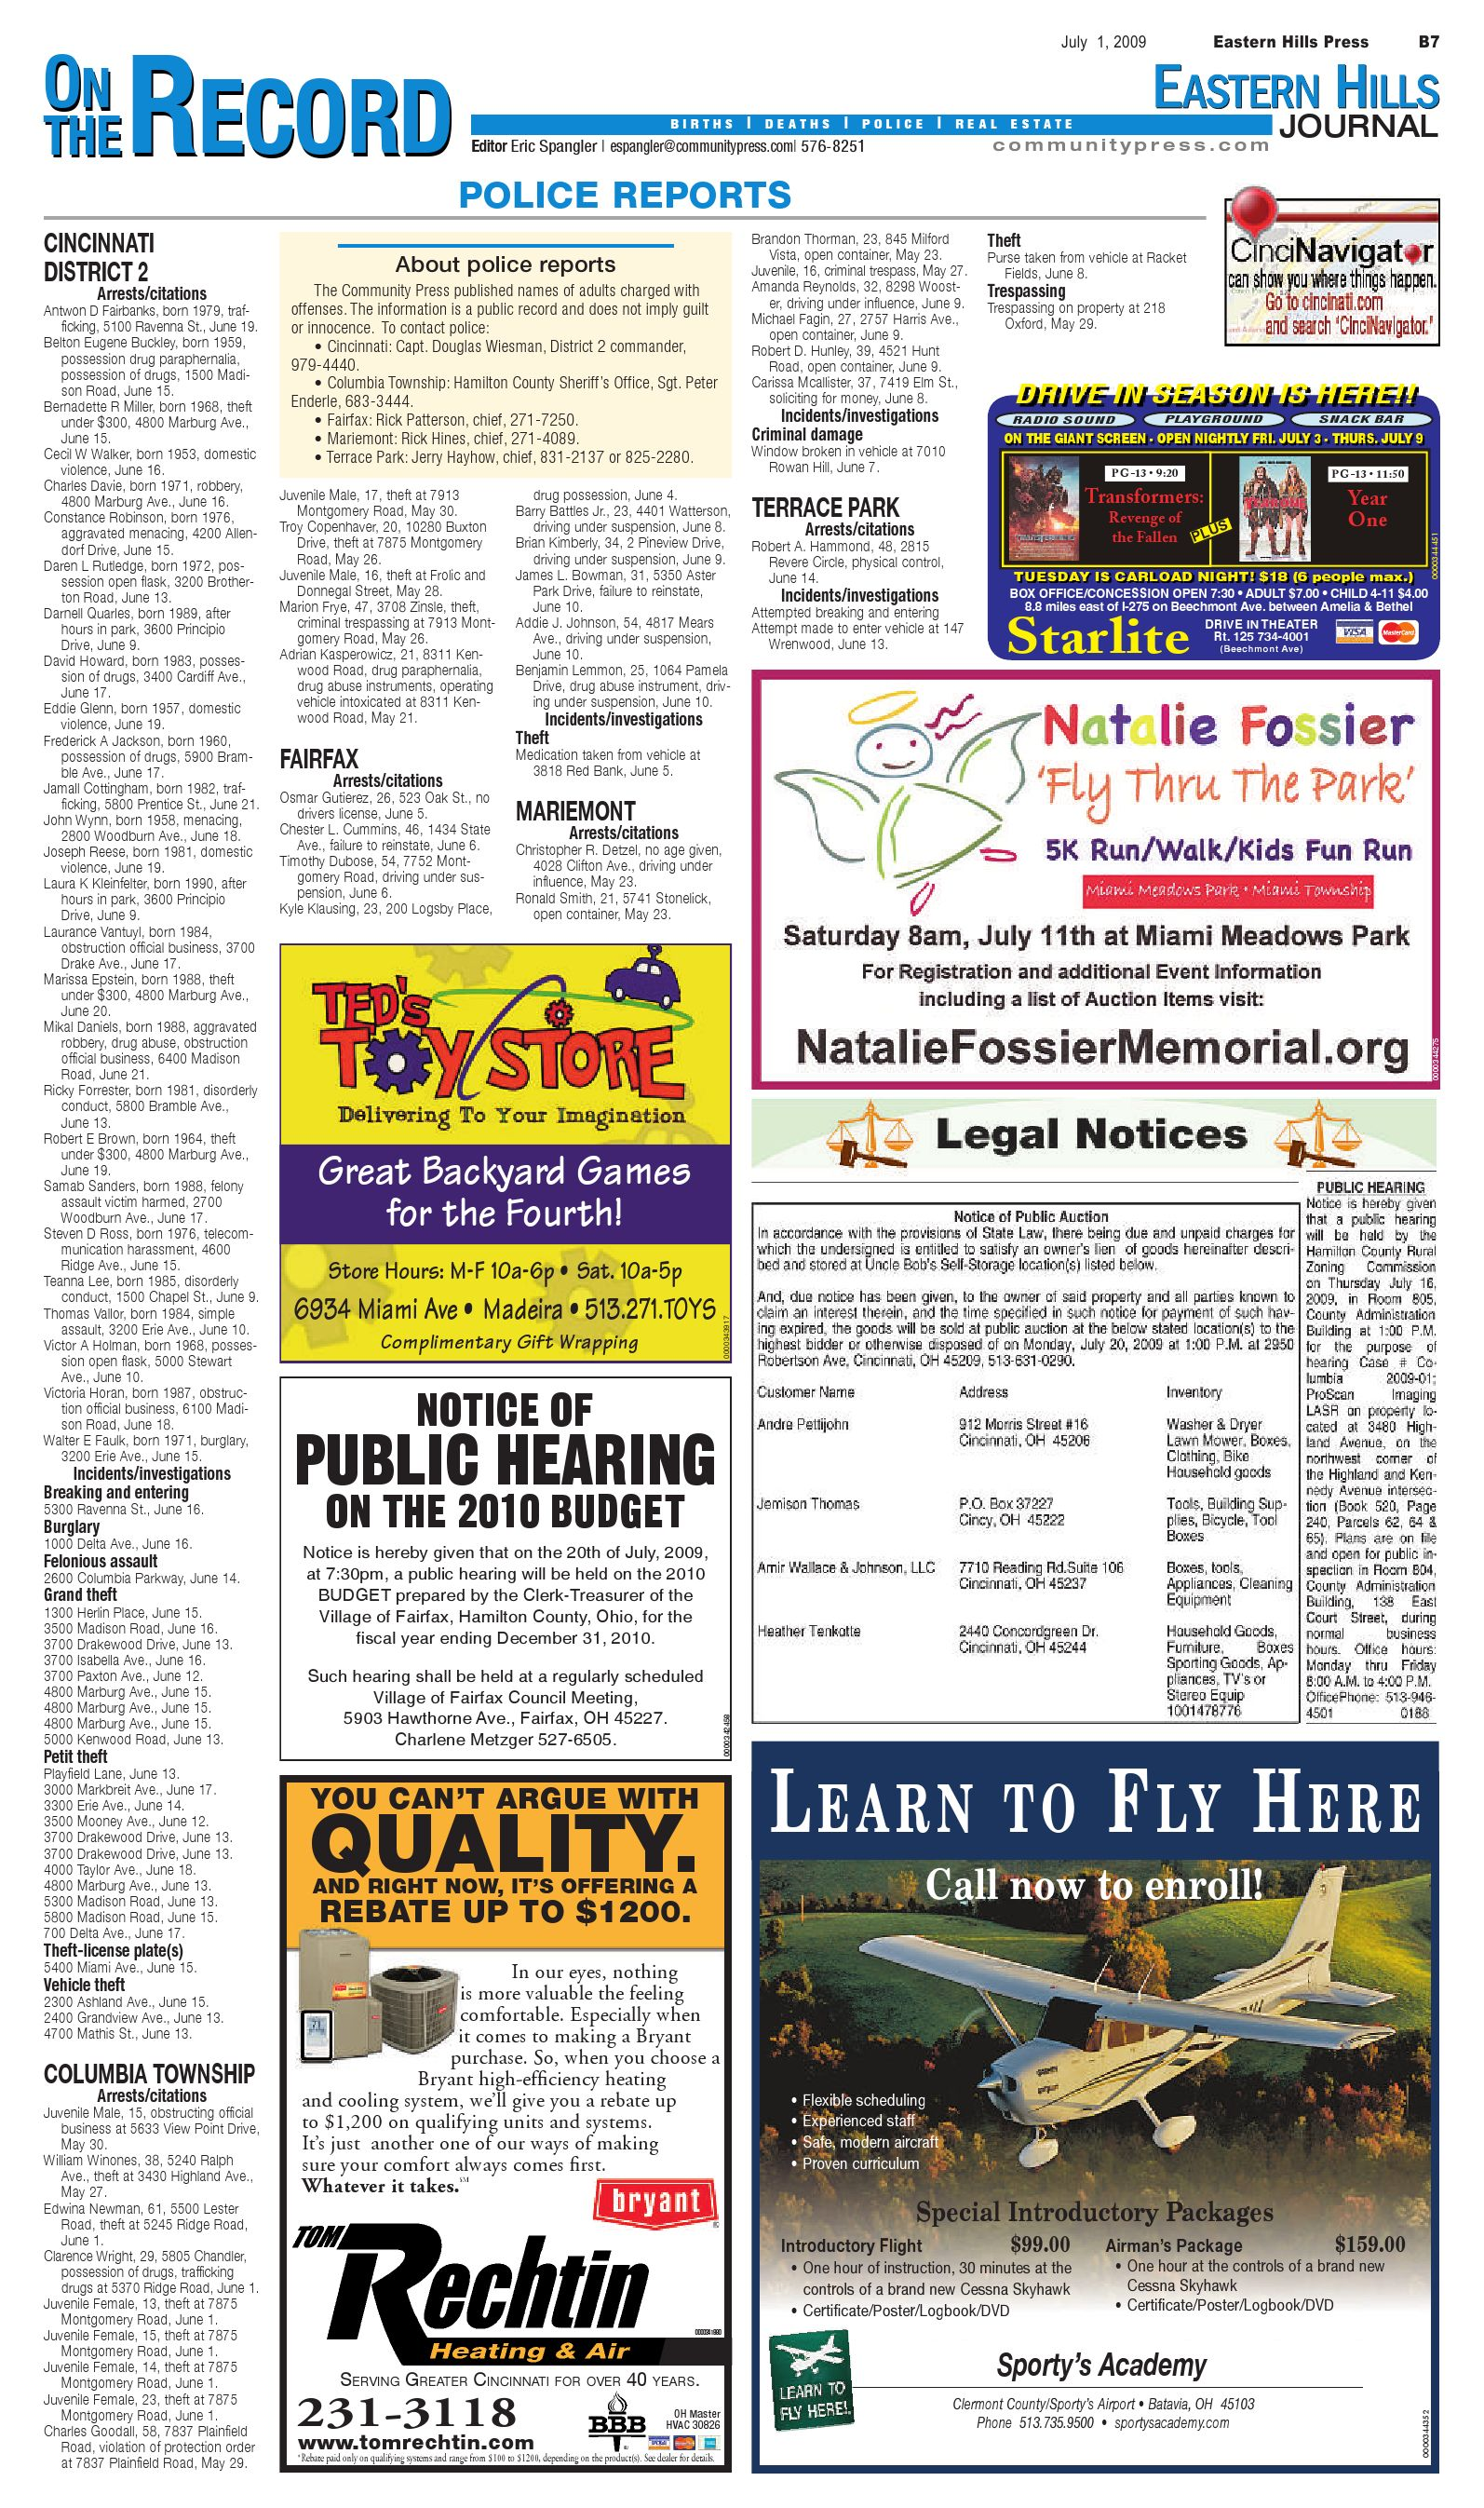 Eastern Hills Journal July 1 2009 By Enquirer Media Issuu